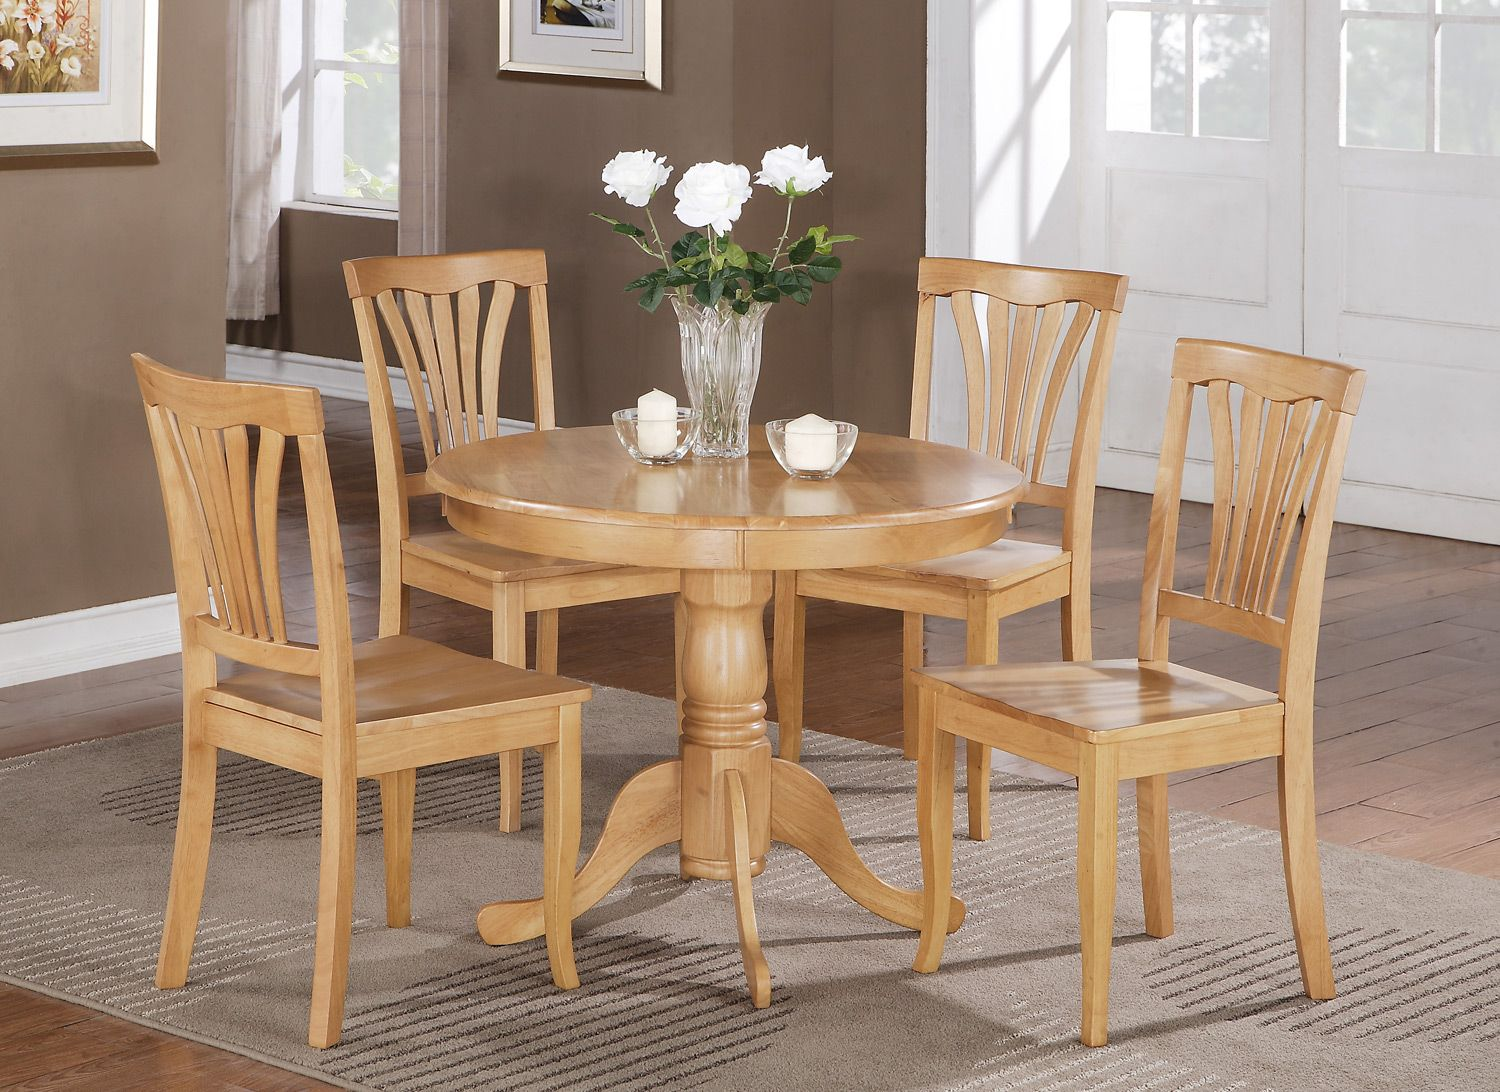 dining tables on amazon amazon kitchen chairs Dining tables on amazon 3 Pc Round Bristol Table Dinette Kitchen Table And 2 Chairs